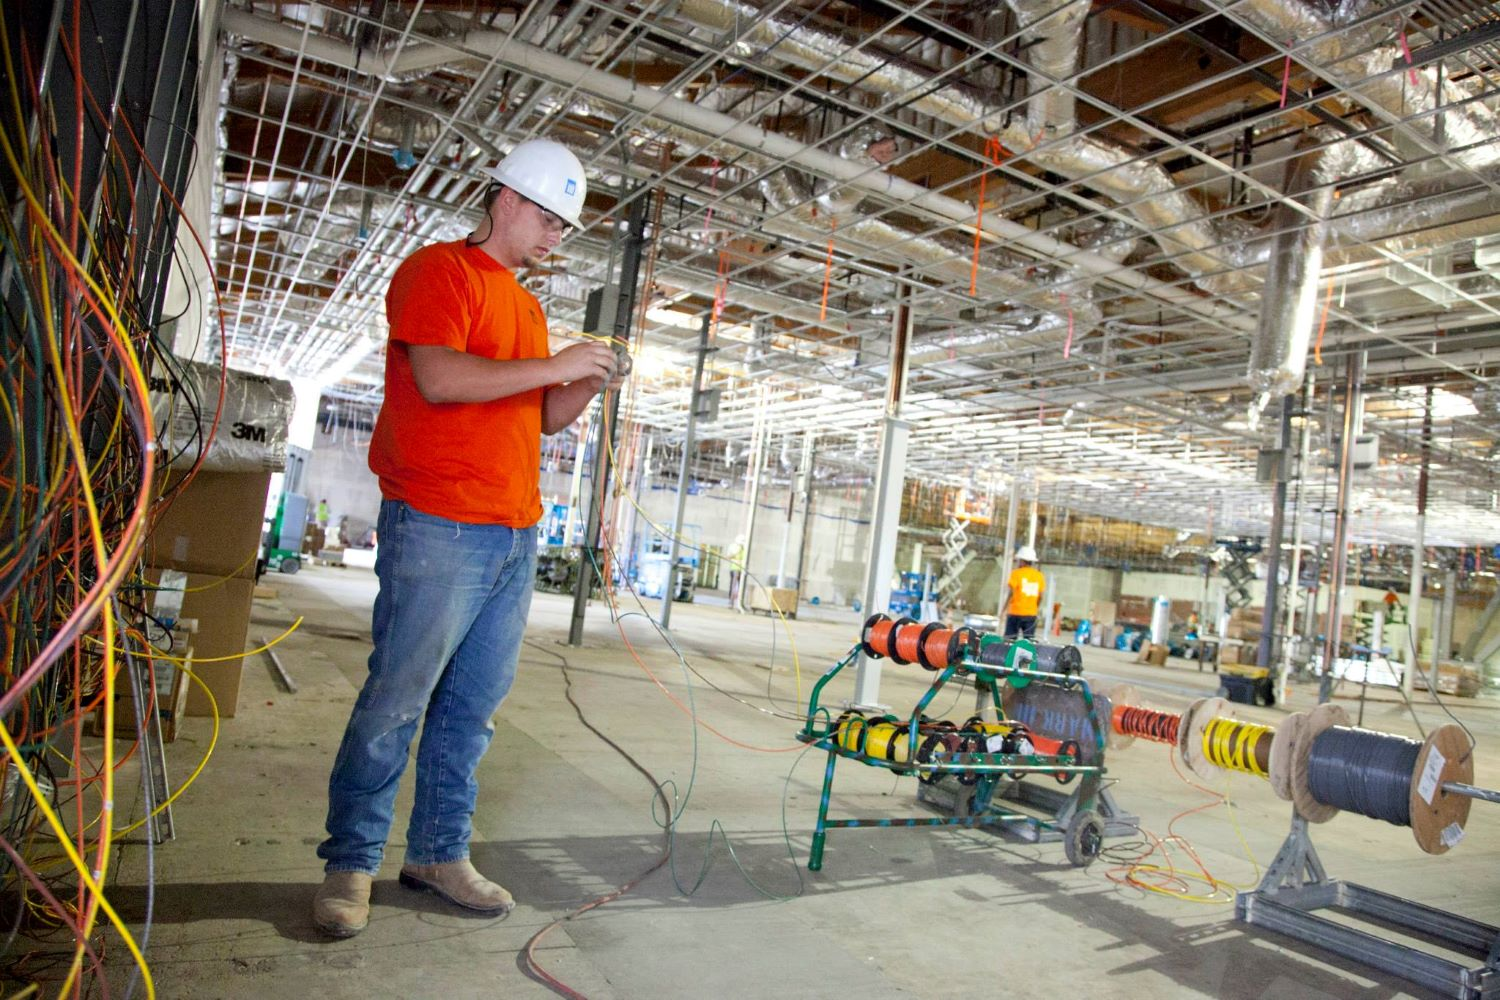 Mark III staff is wiring electrical grid in a building